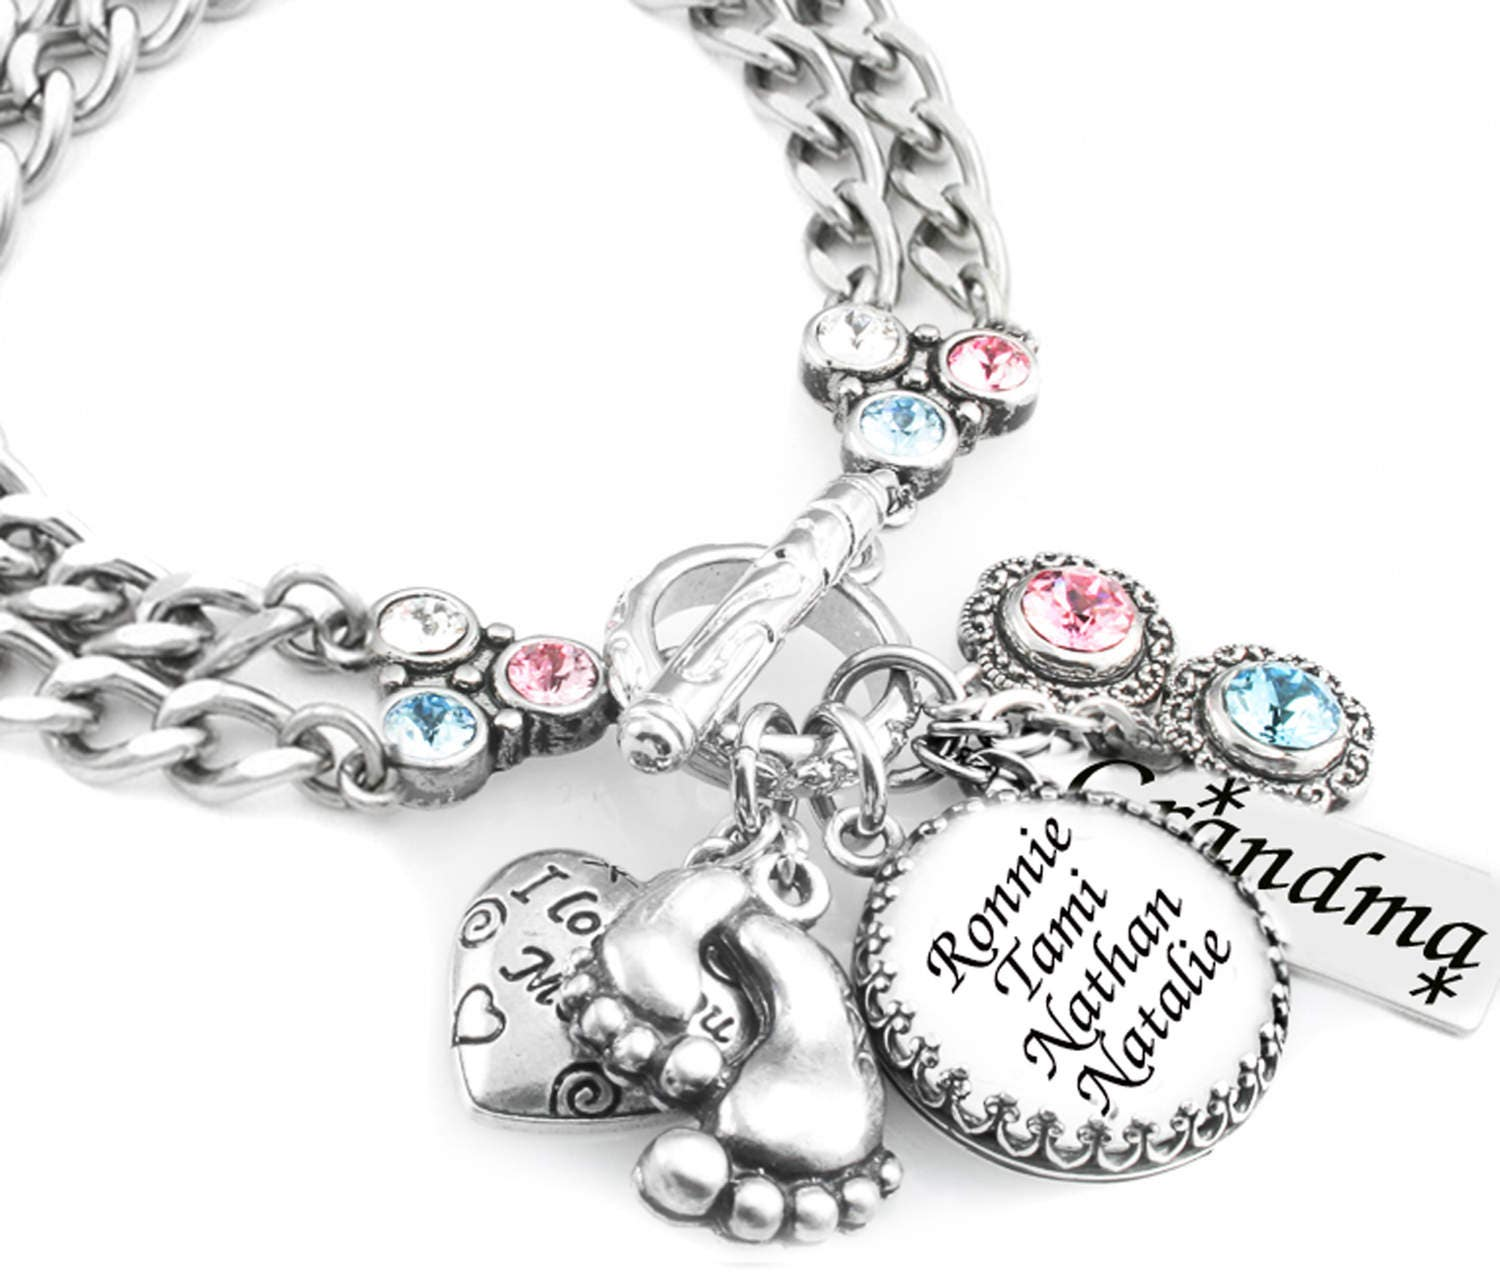 Mothers Charm Bracelet: Jewelry For Mom Mother's Bracelet Nana